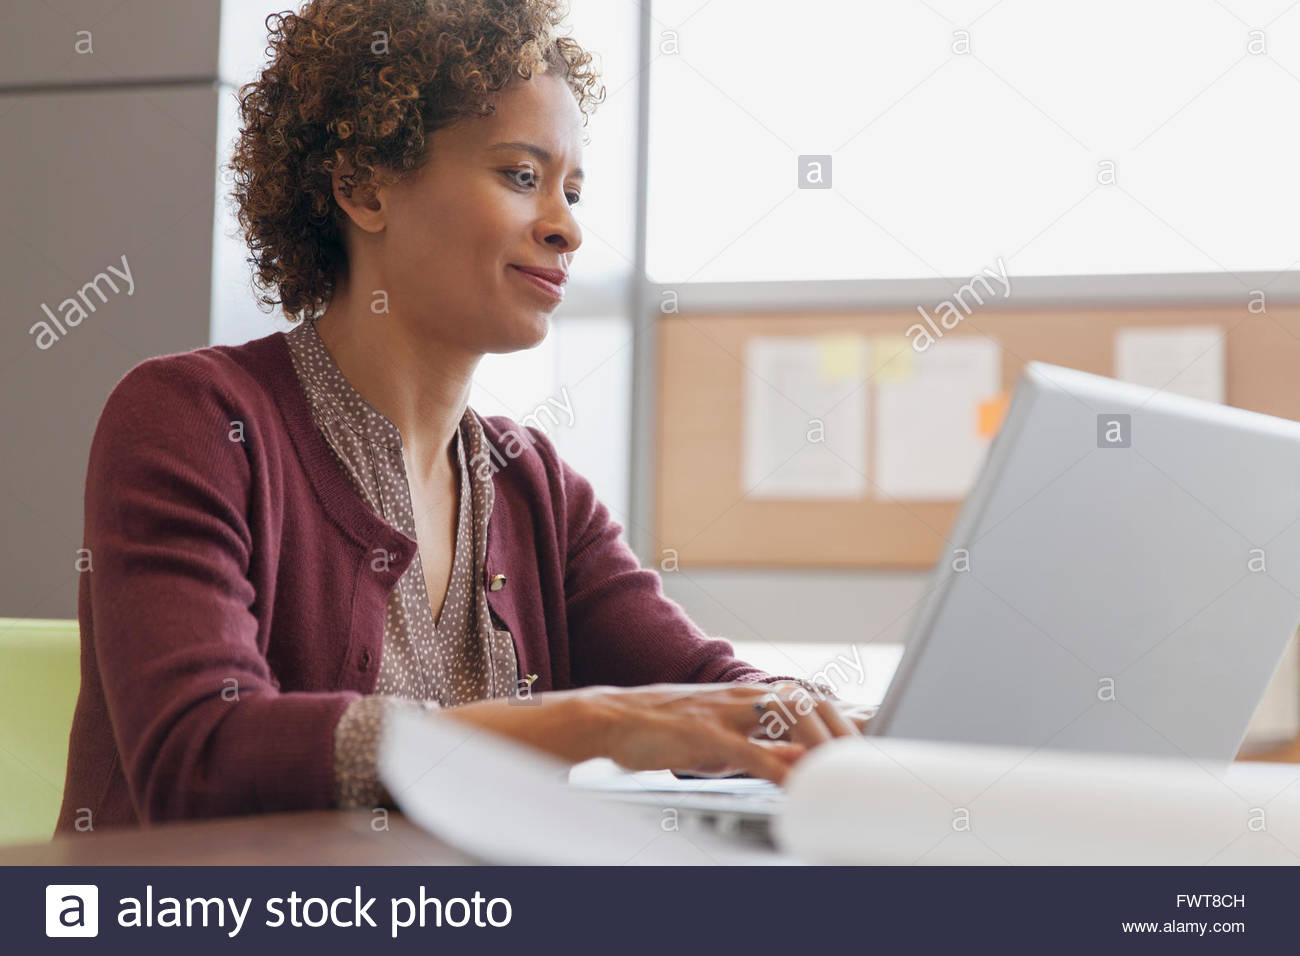 Businessman sitting in caf_ with laptop - Stock Image